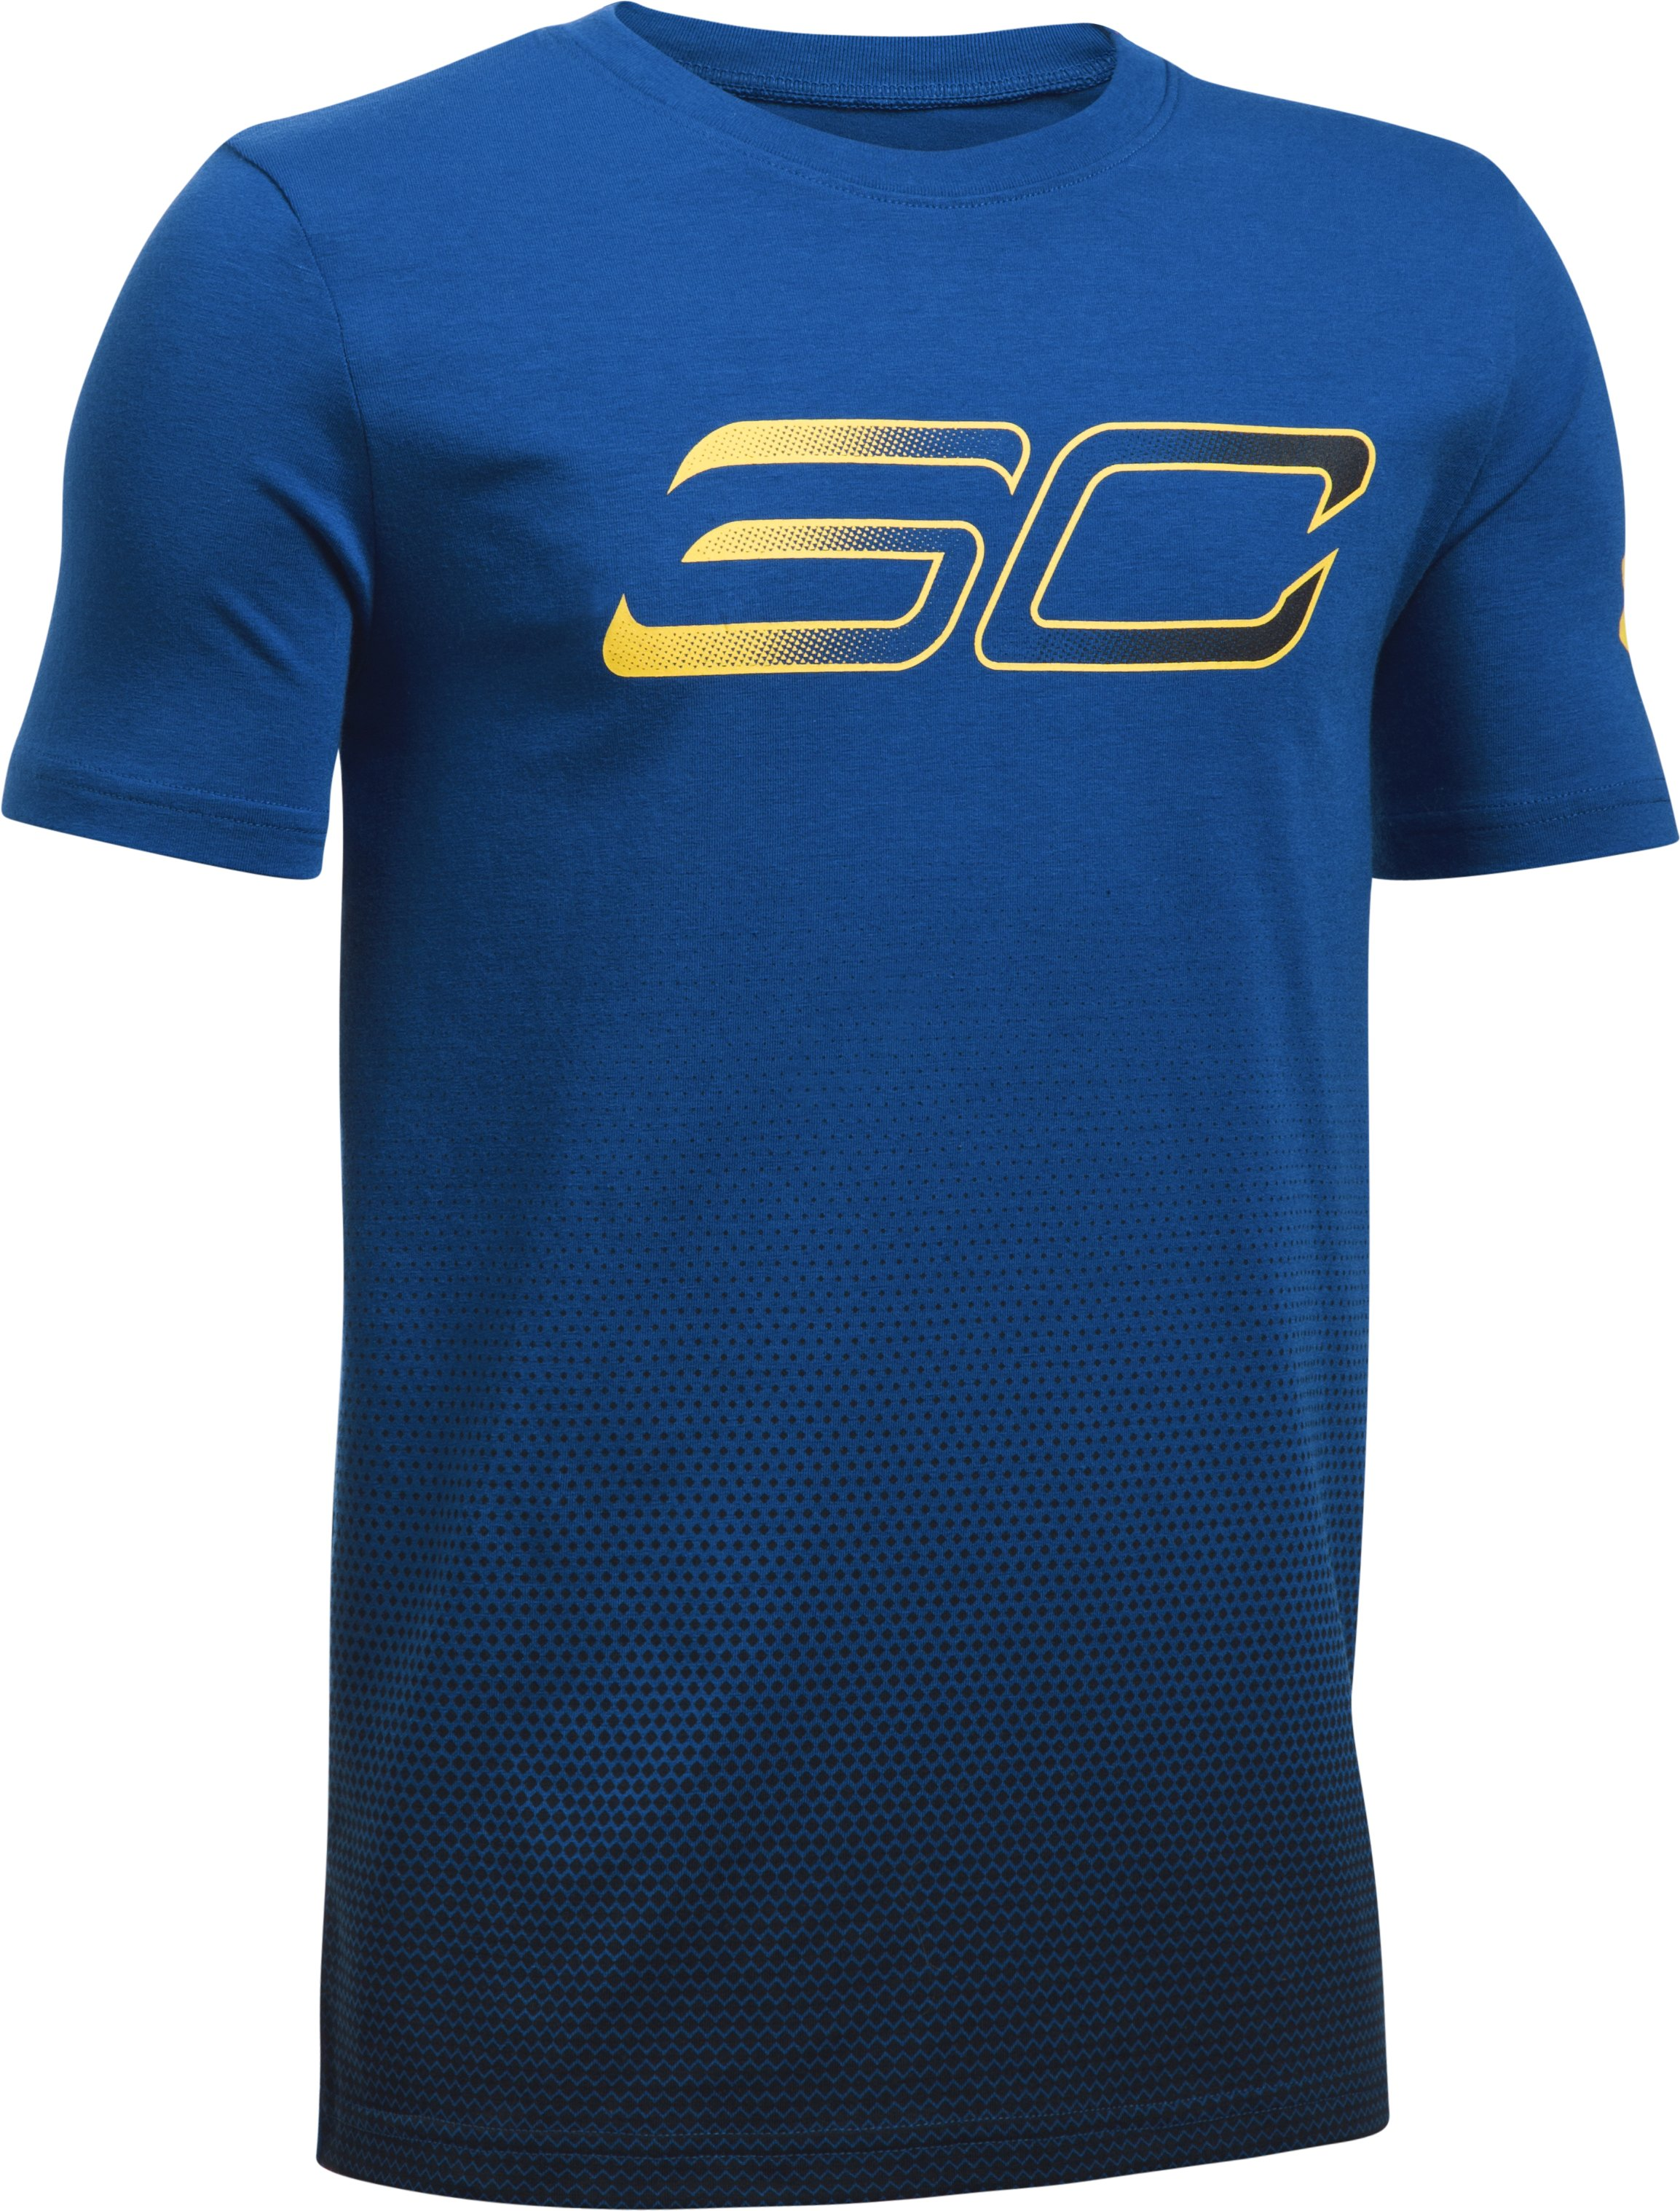 Boys' SC30 Player Fade Short Sleeve T-Shirt, Royal